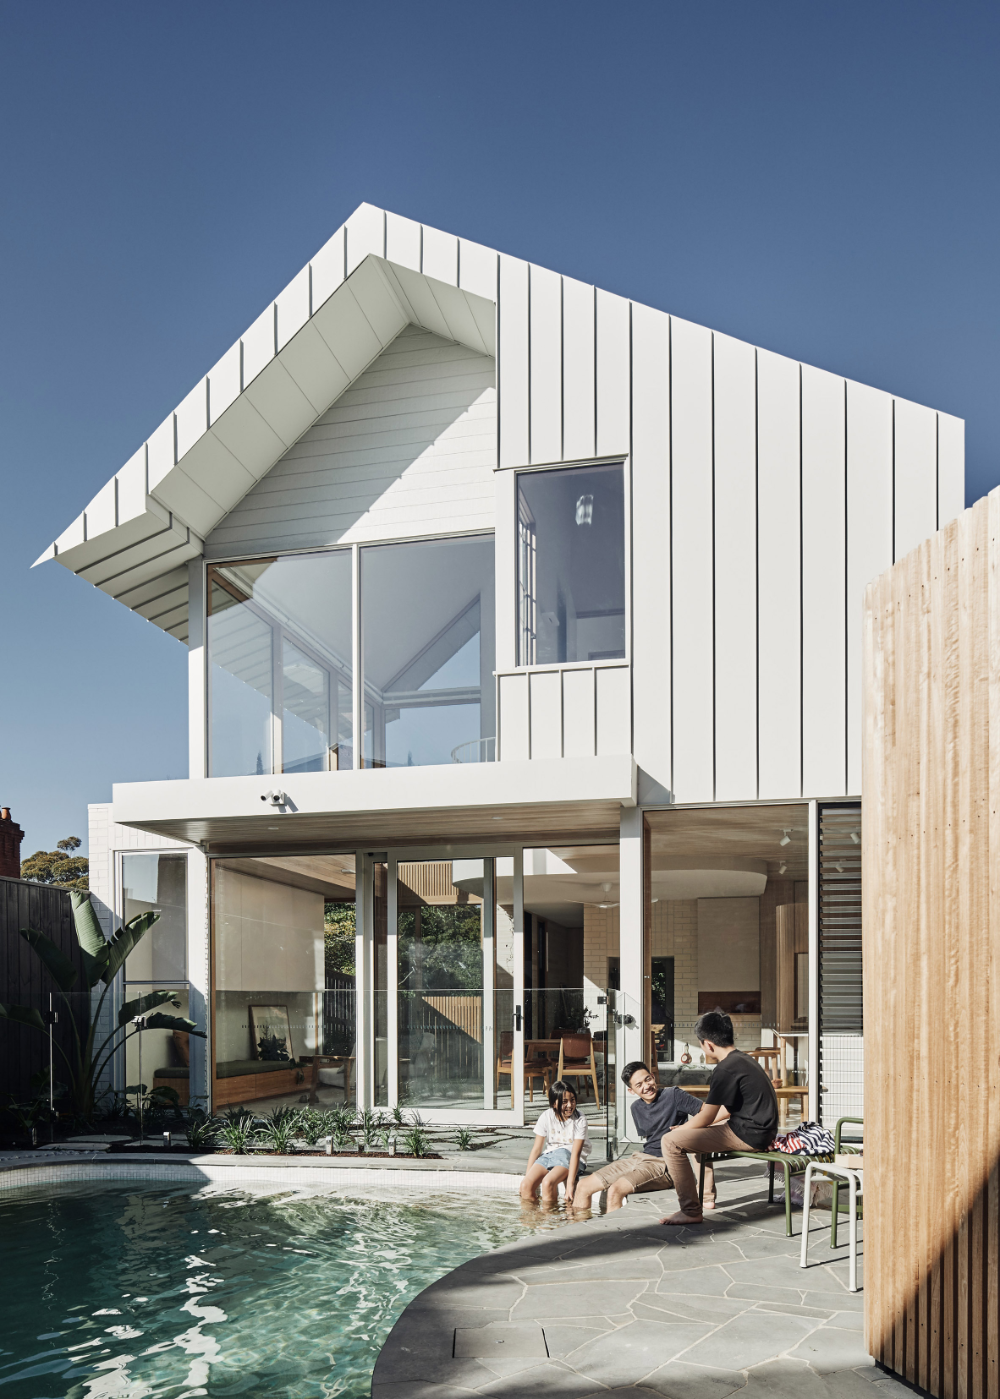 Architecture Practice Timmins Whyte Has Added A Double Height Gabled Extension To A 19th Century Ho In 2020 Melbourne House House Extension Design Architecture House